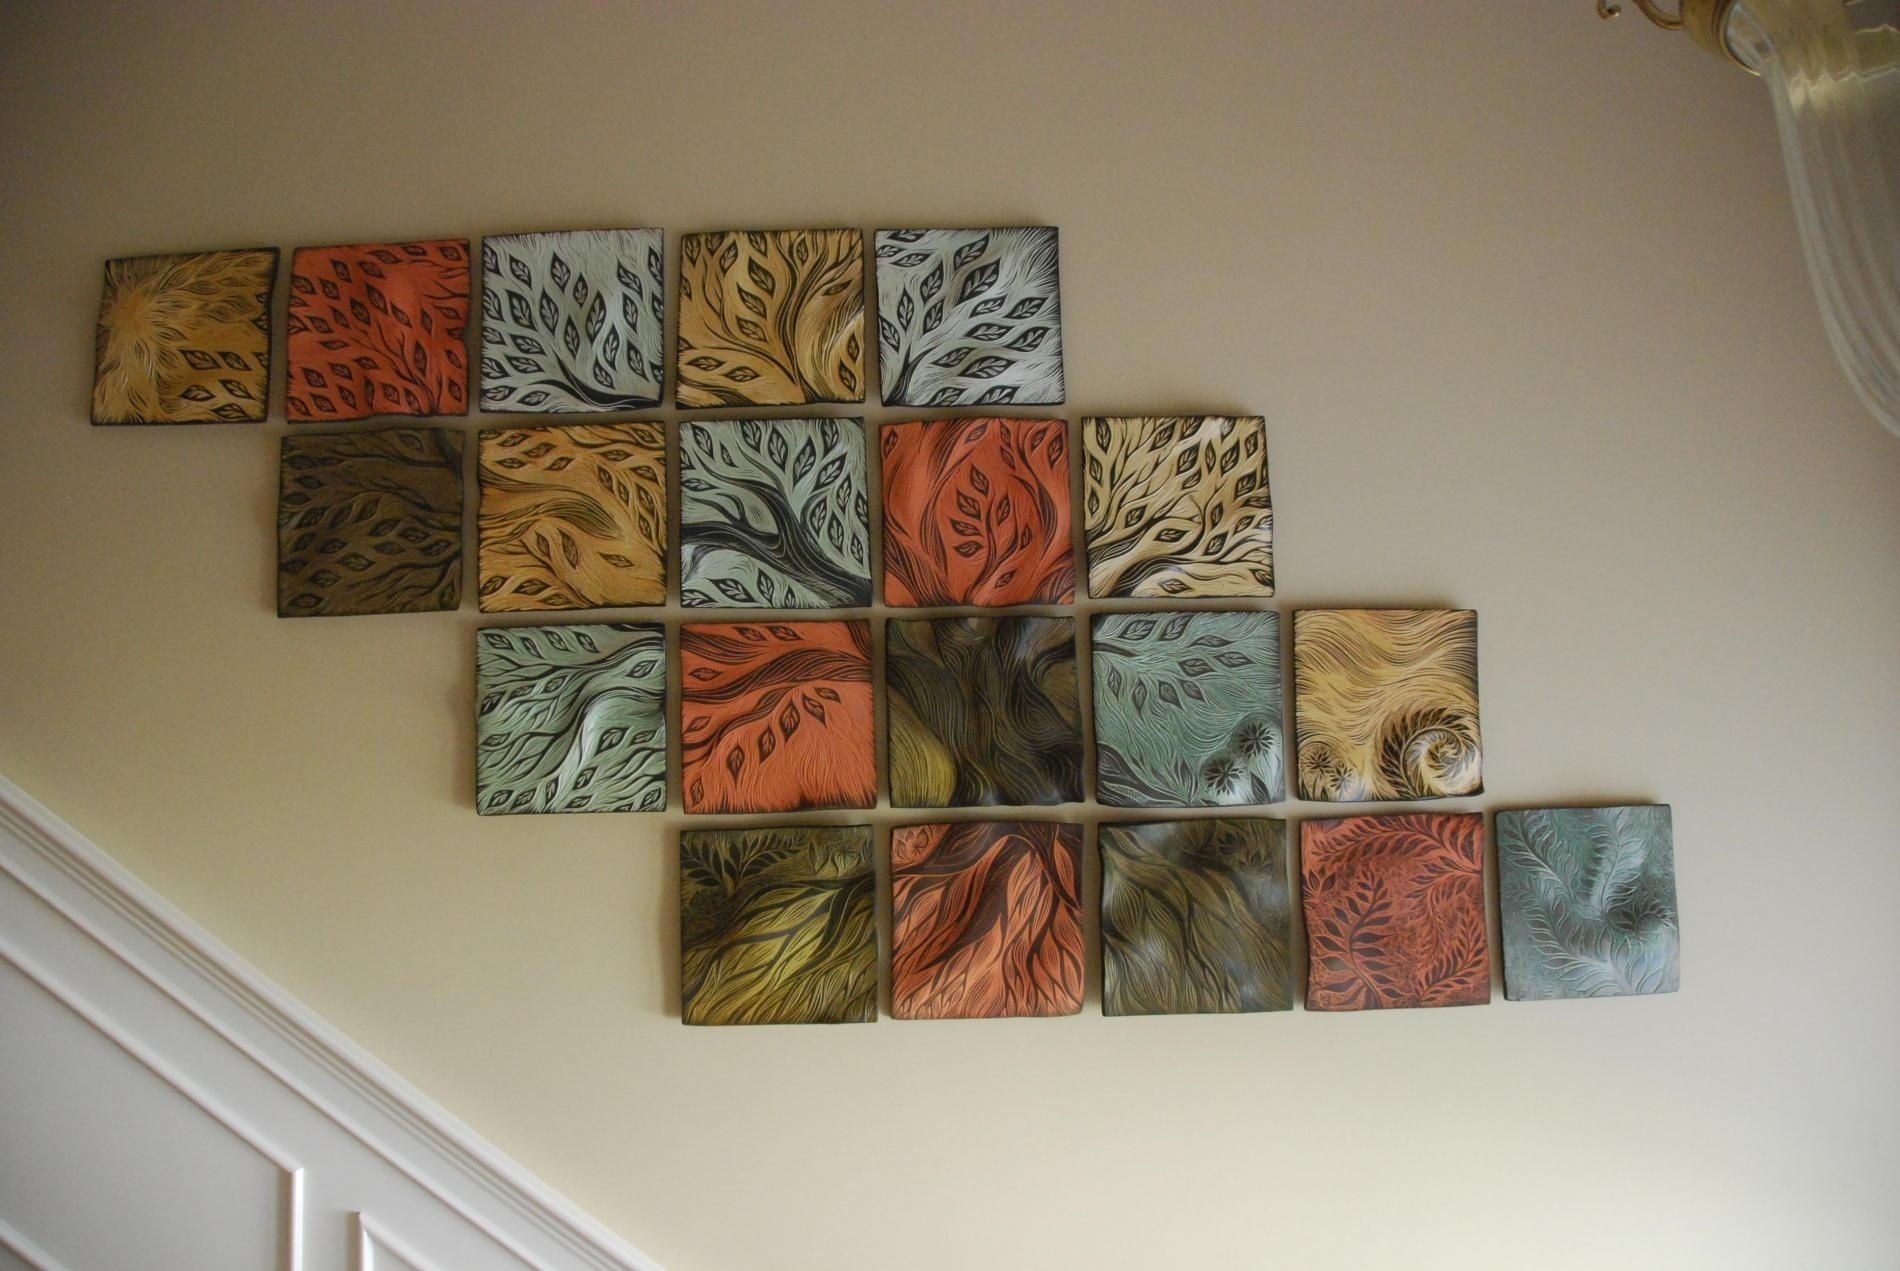 Ceramic Wall Art Marvelous Ceramic Wall Art - Wall Decoration And in Ceramic Wall Art (Image 7 of 20)